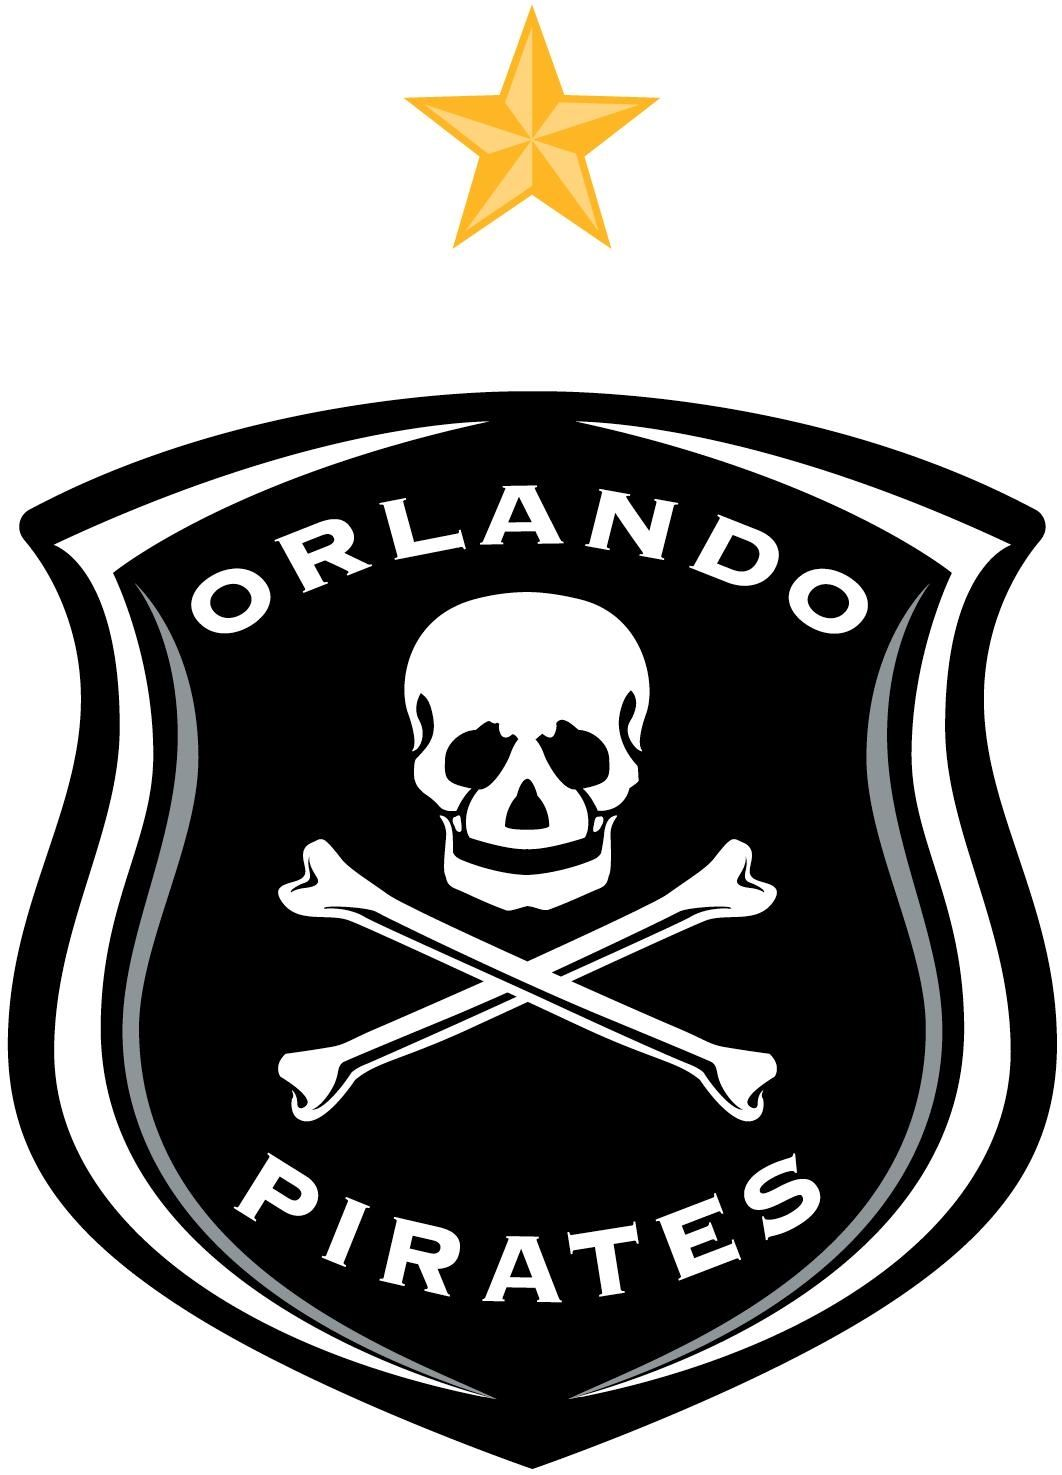 Orlando Pirates Soccer Logo Football Team Logos Pirates